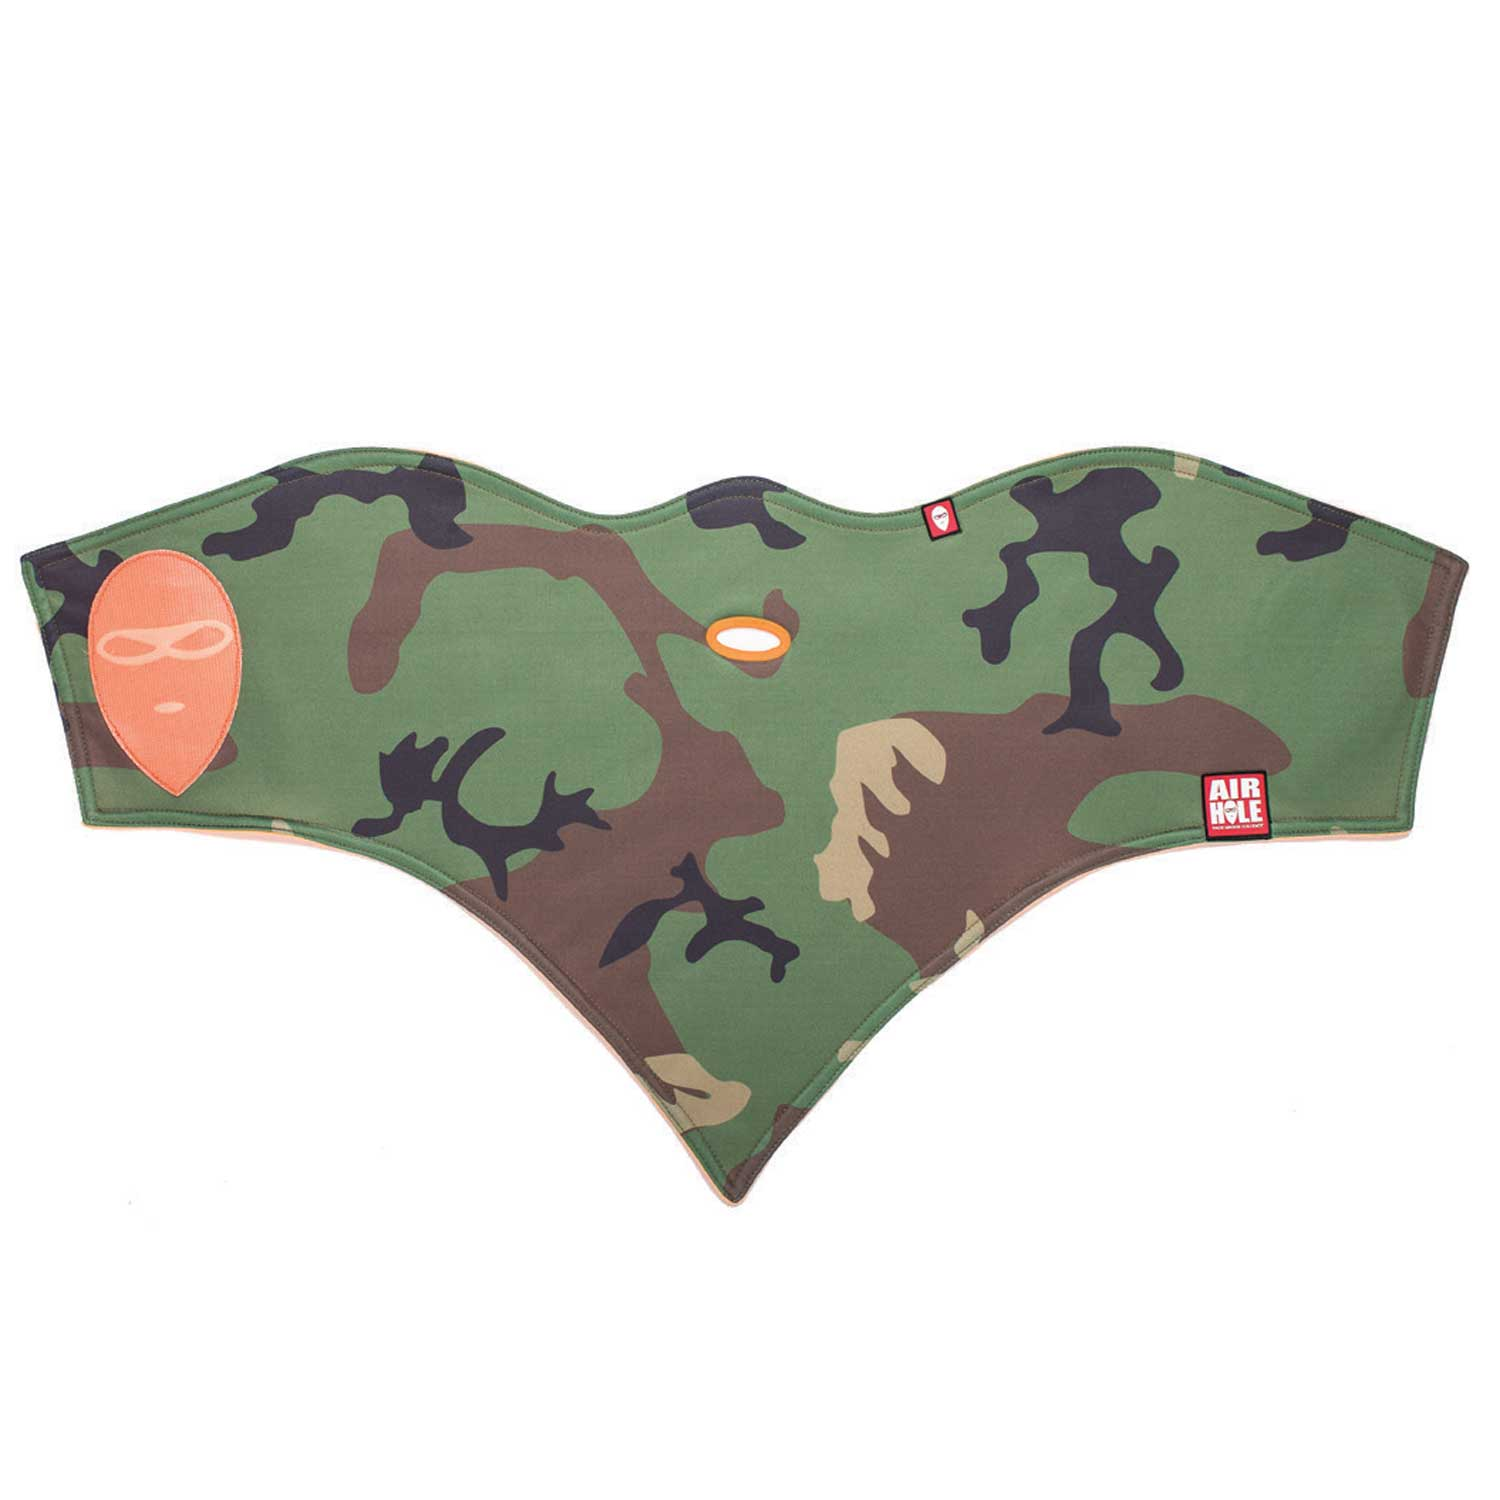 Airhole Standard 1 (Woodland) Face Mask by